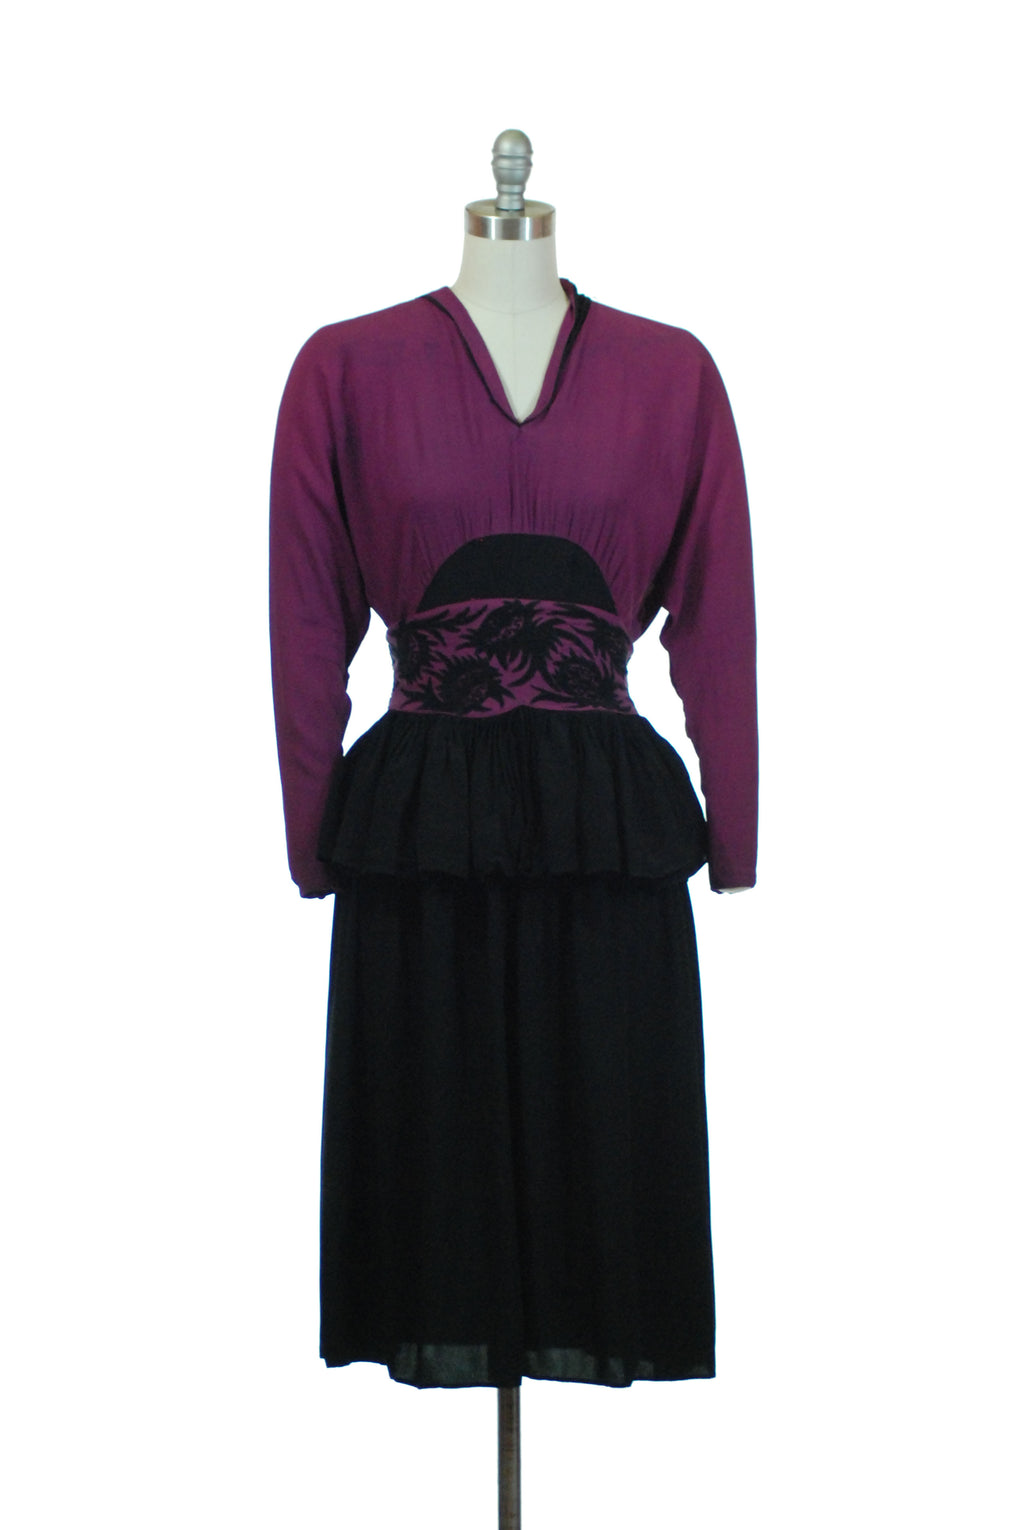 Bold 1940s Colorblock Dress with Applique Made of Two 1930s Crepe Dresses